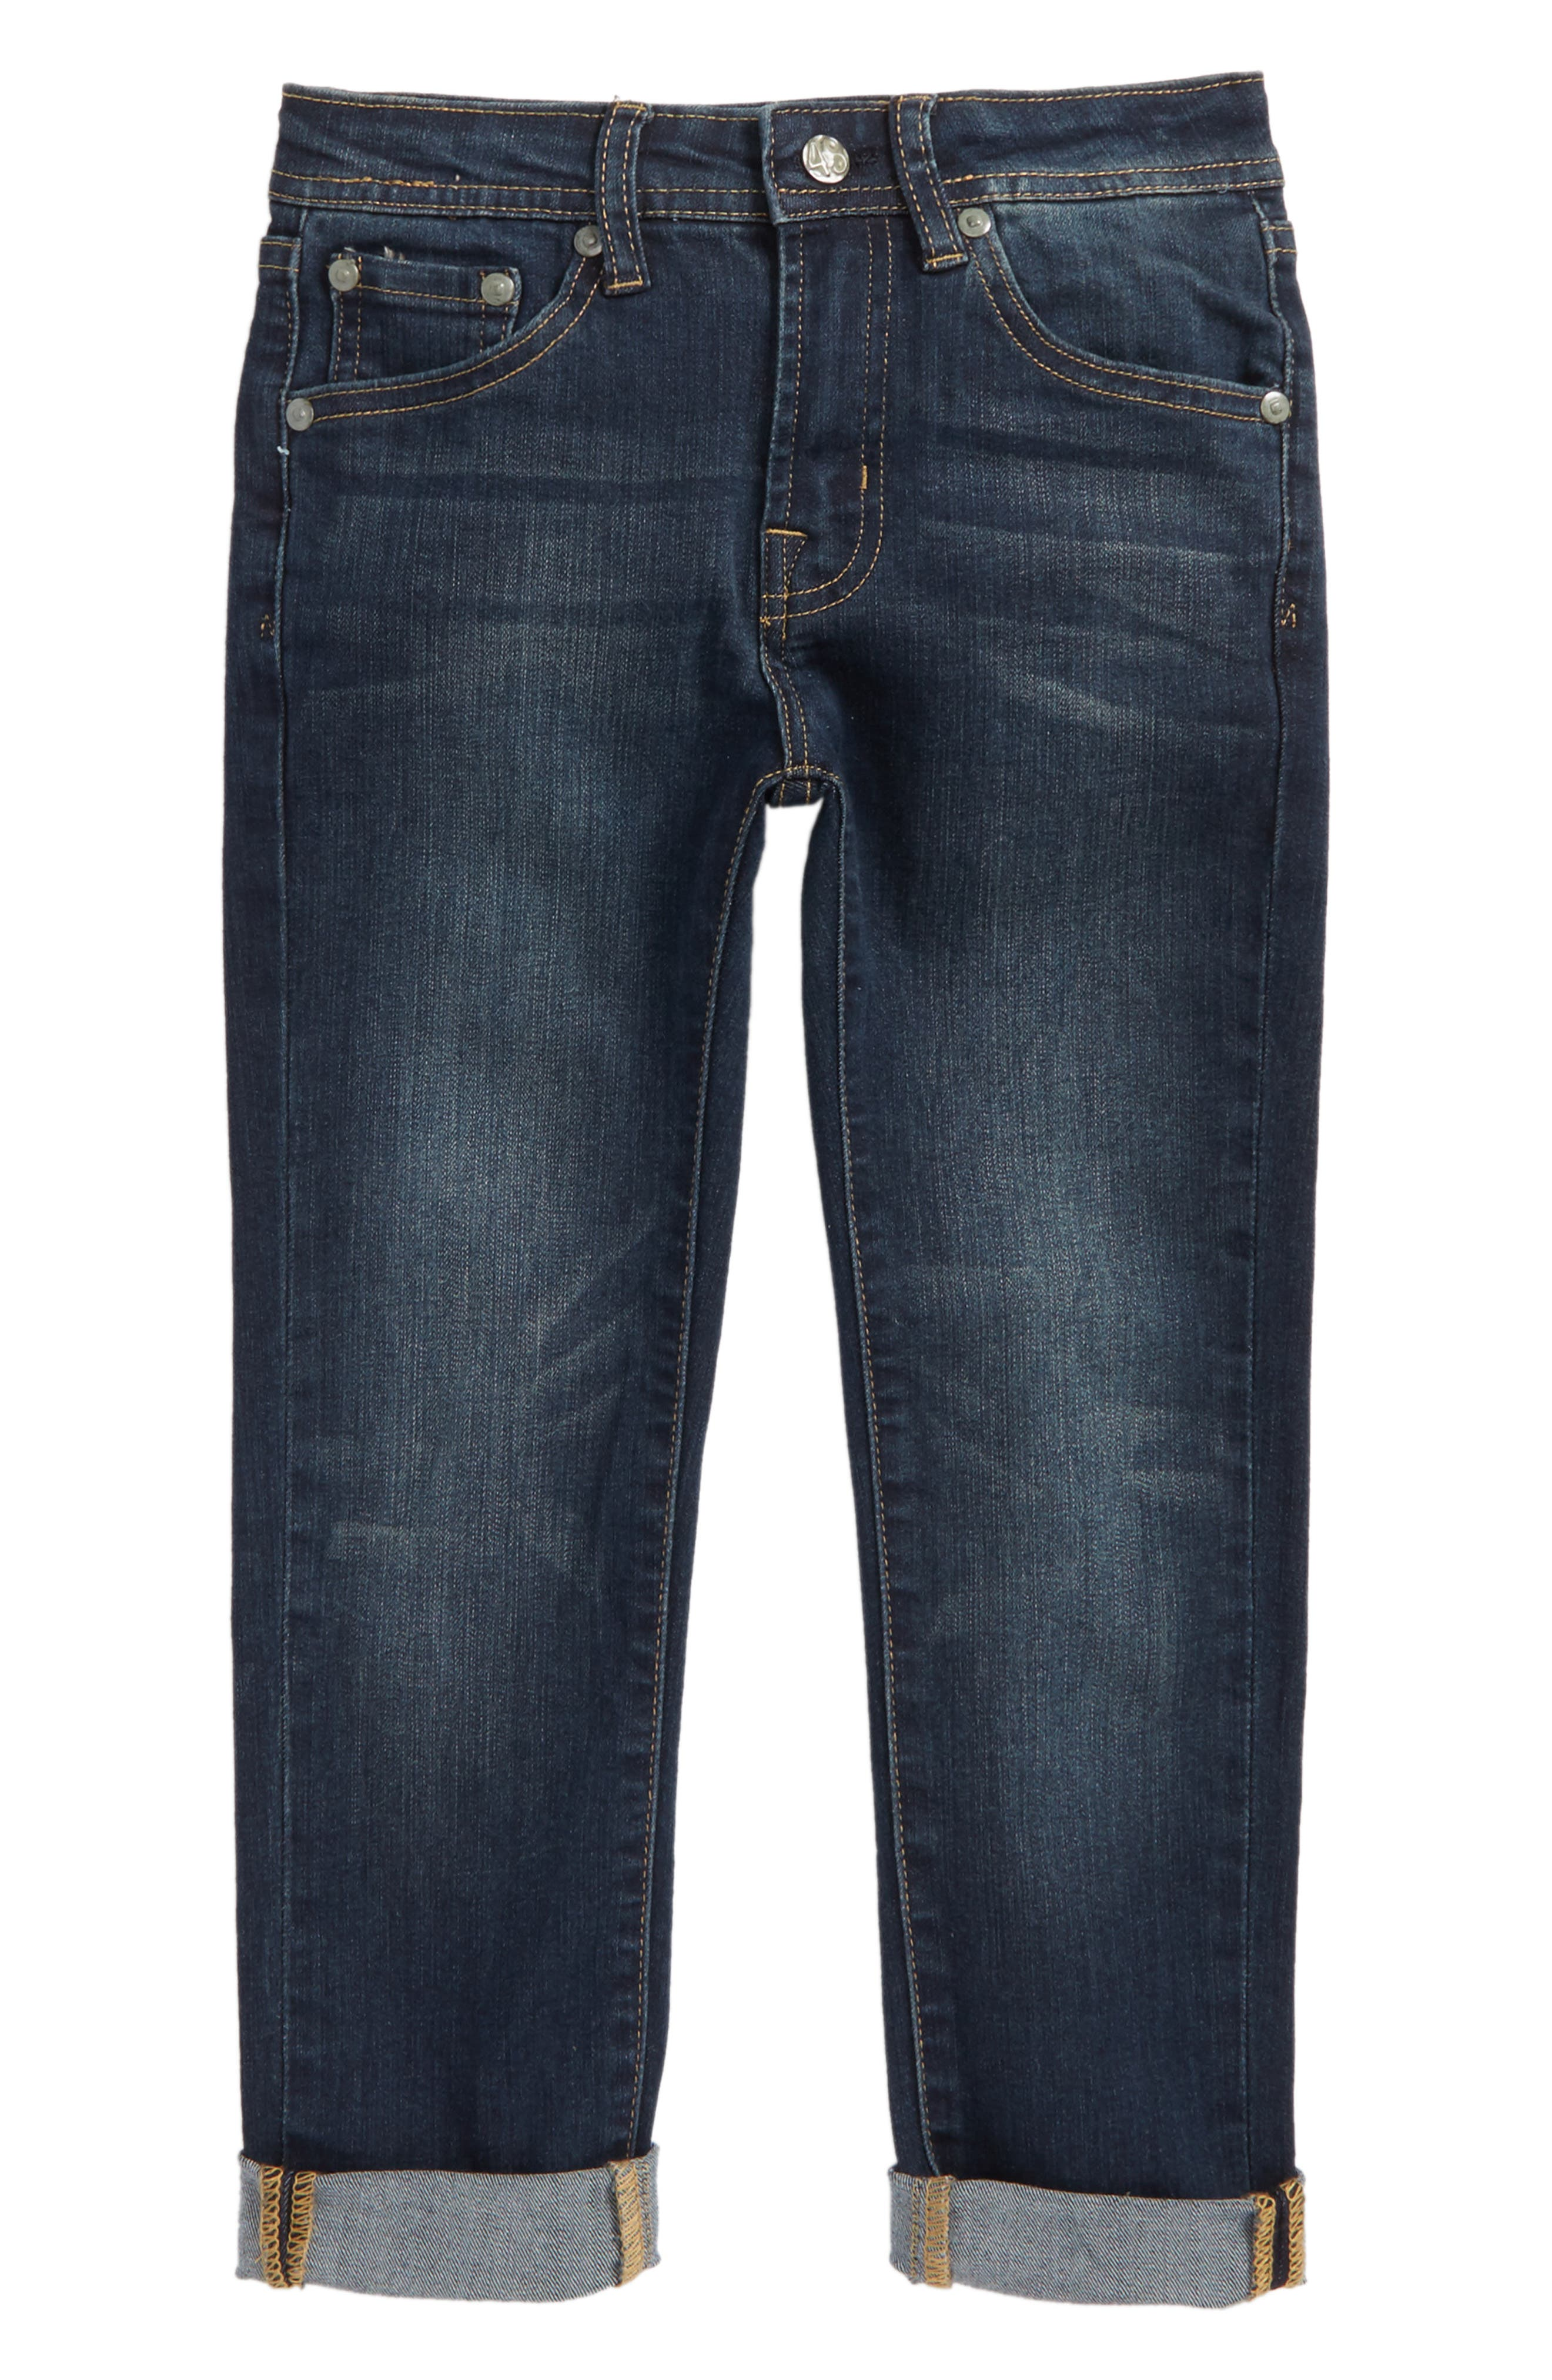 Main Image - ag adriano goldschmied kids The James Slim Skinny Jeans (Toddler Boys & Little Boys)